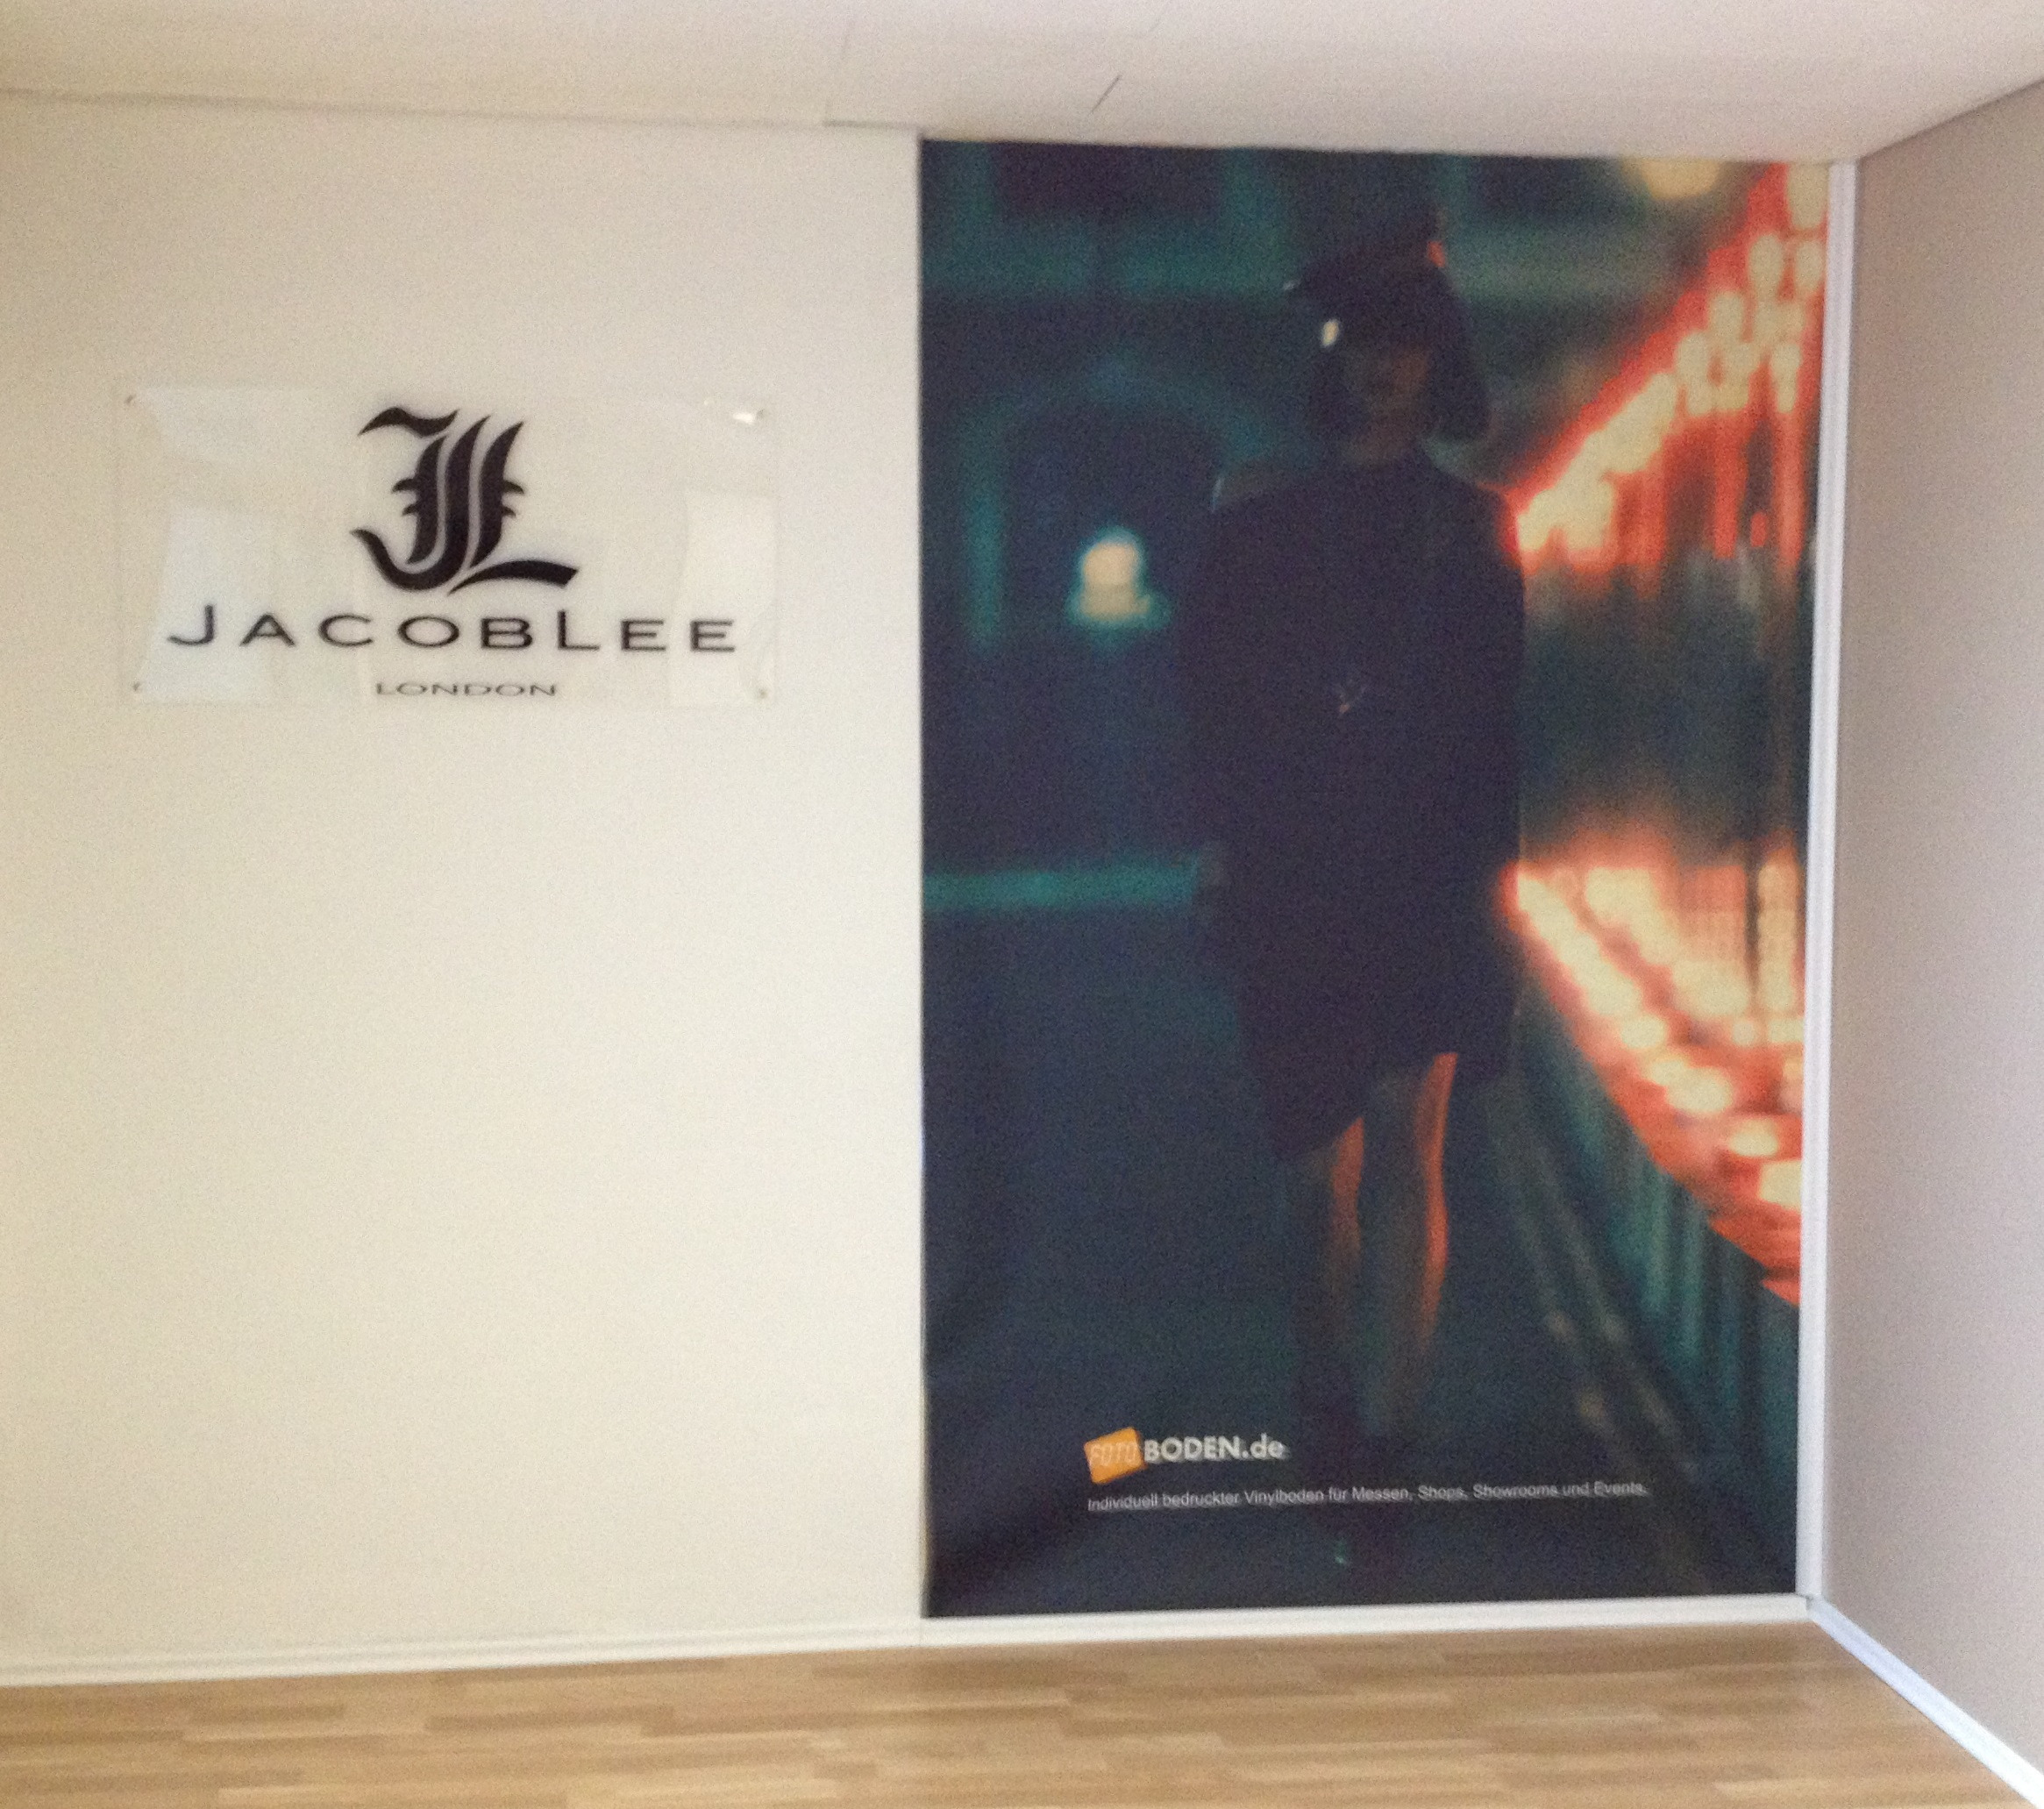 JacobLee – London